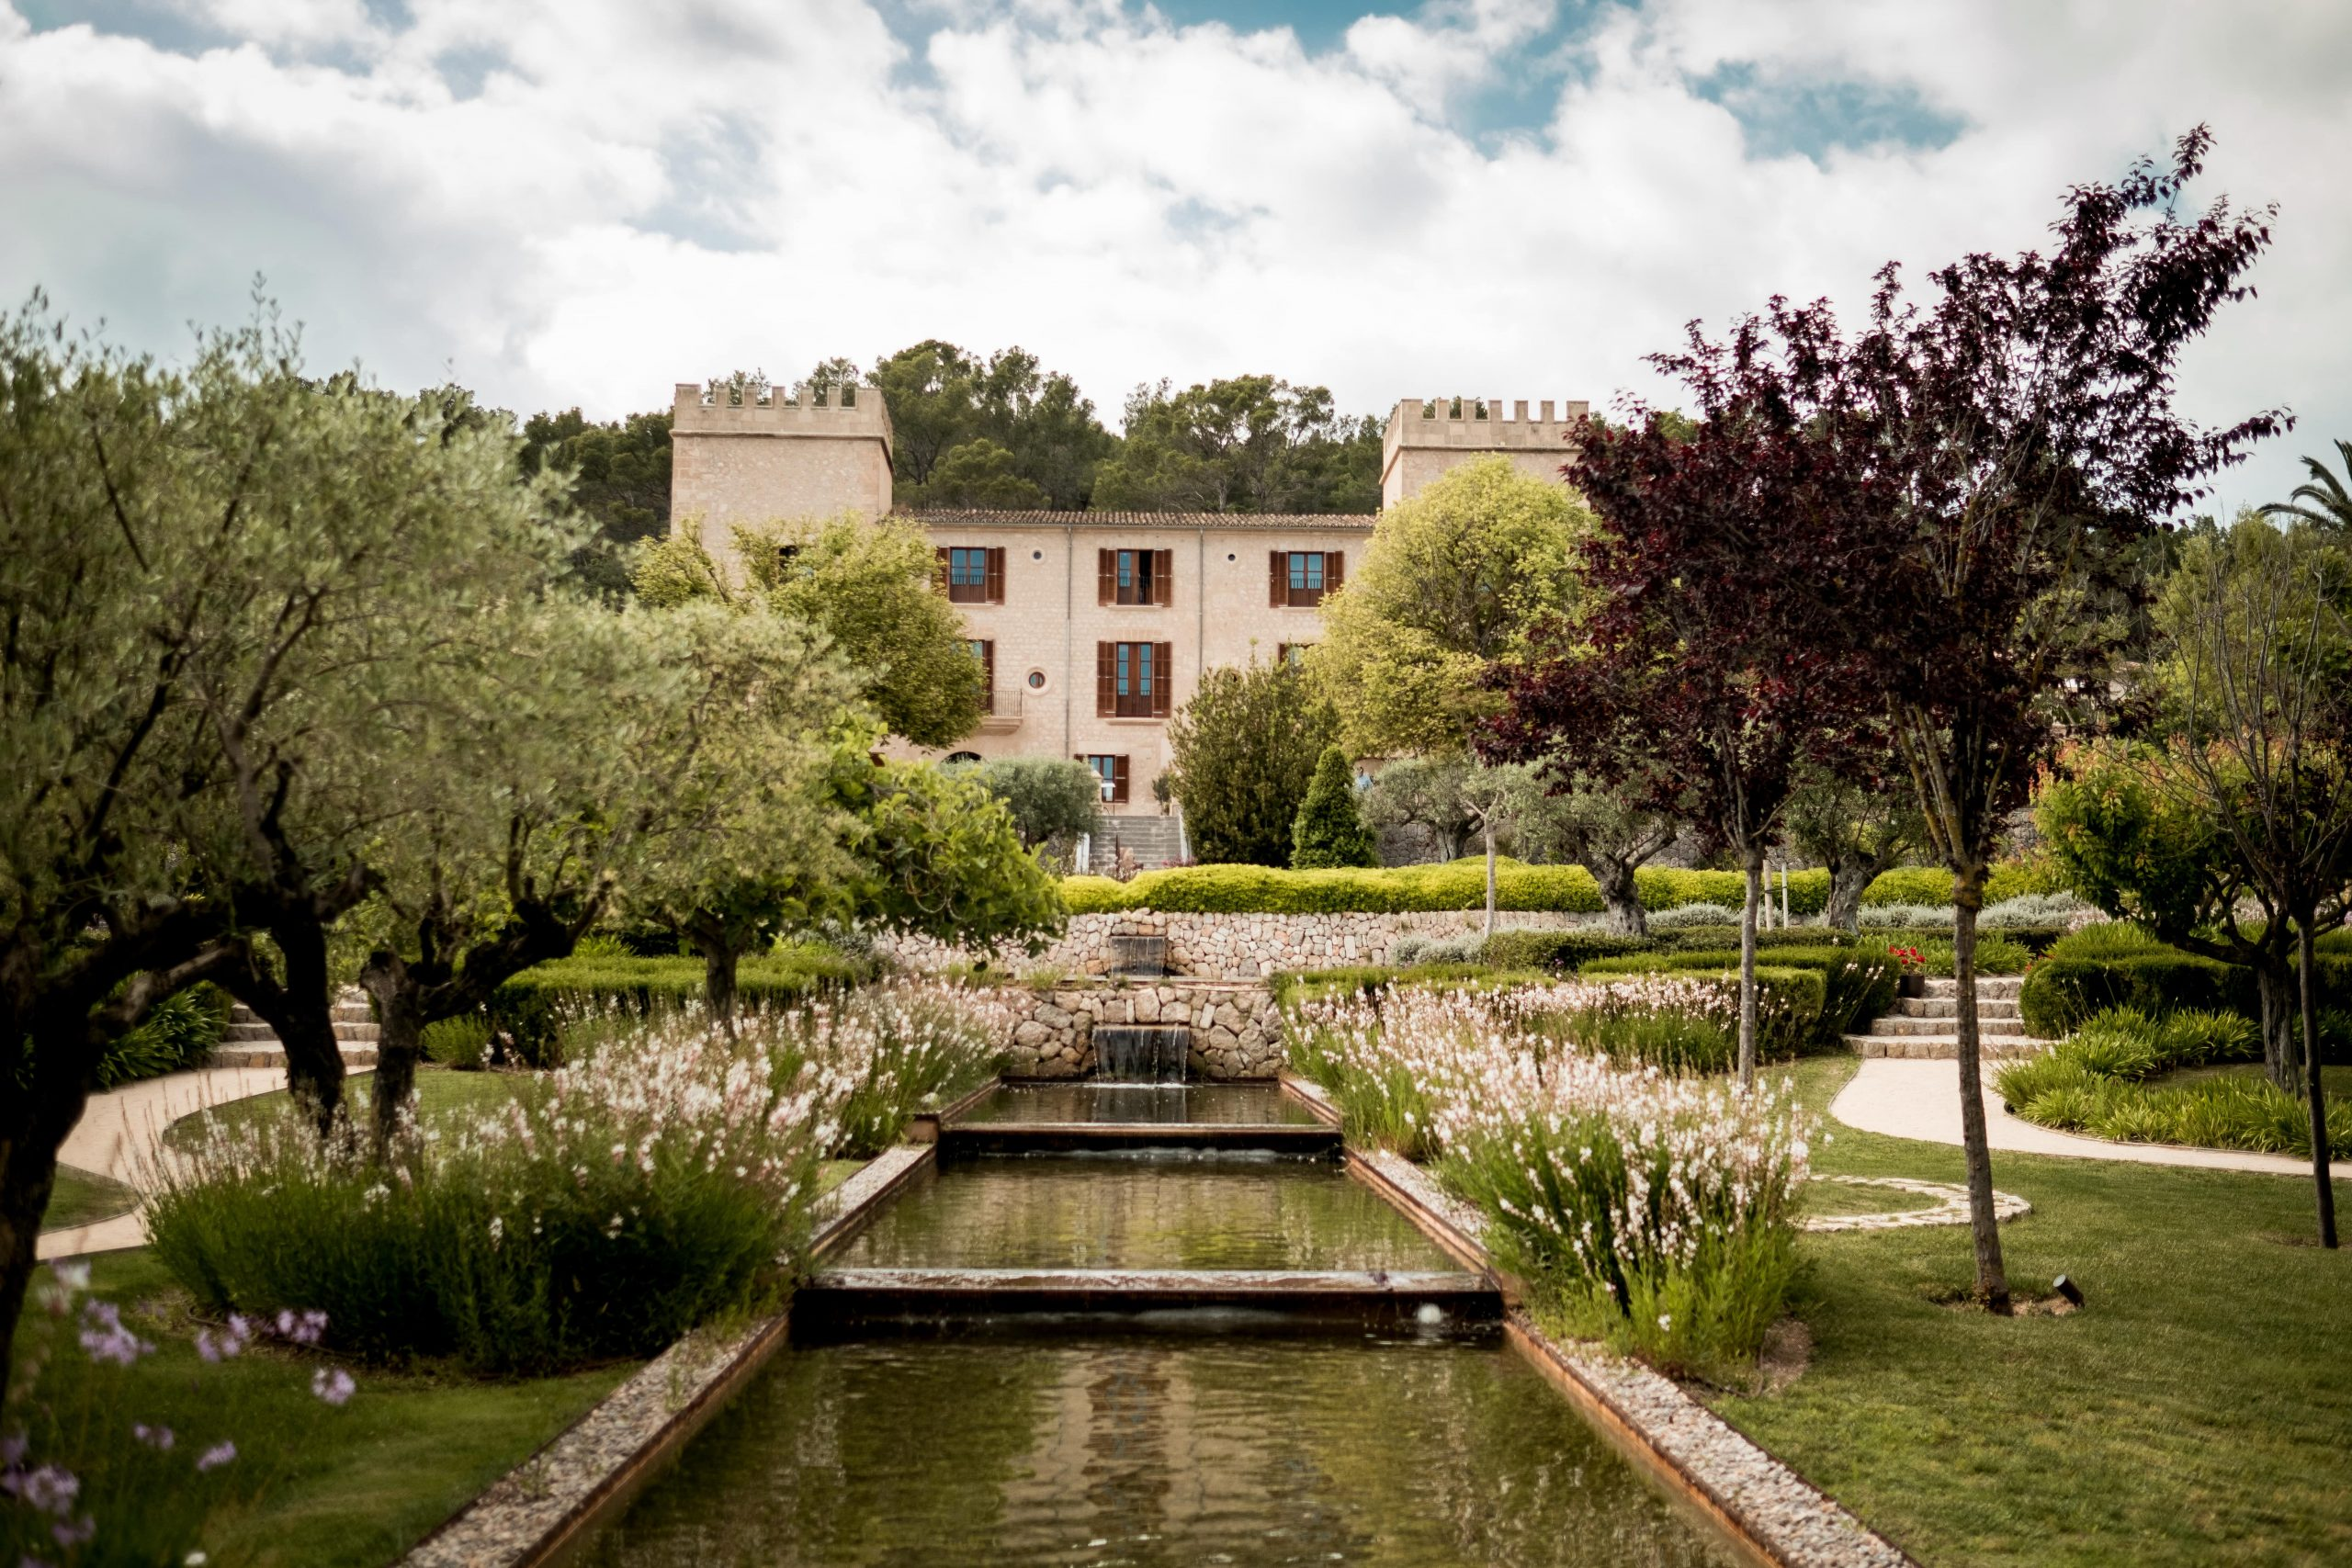 luxury hotel venue in castle son claret at Mallorca for wedding and event